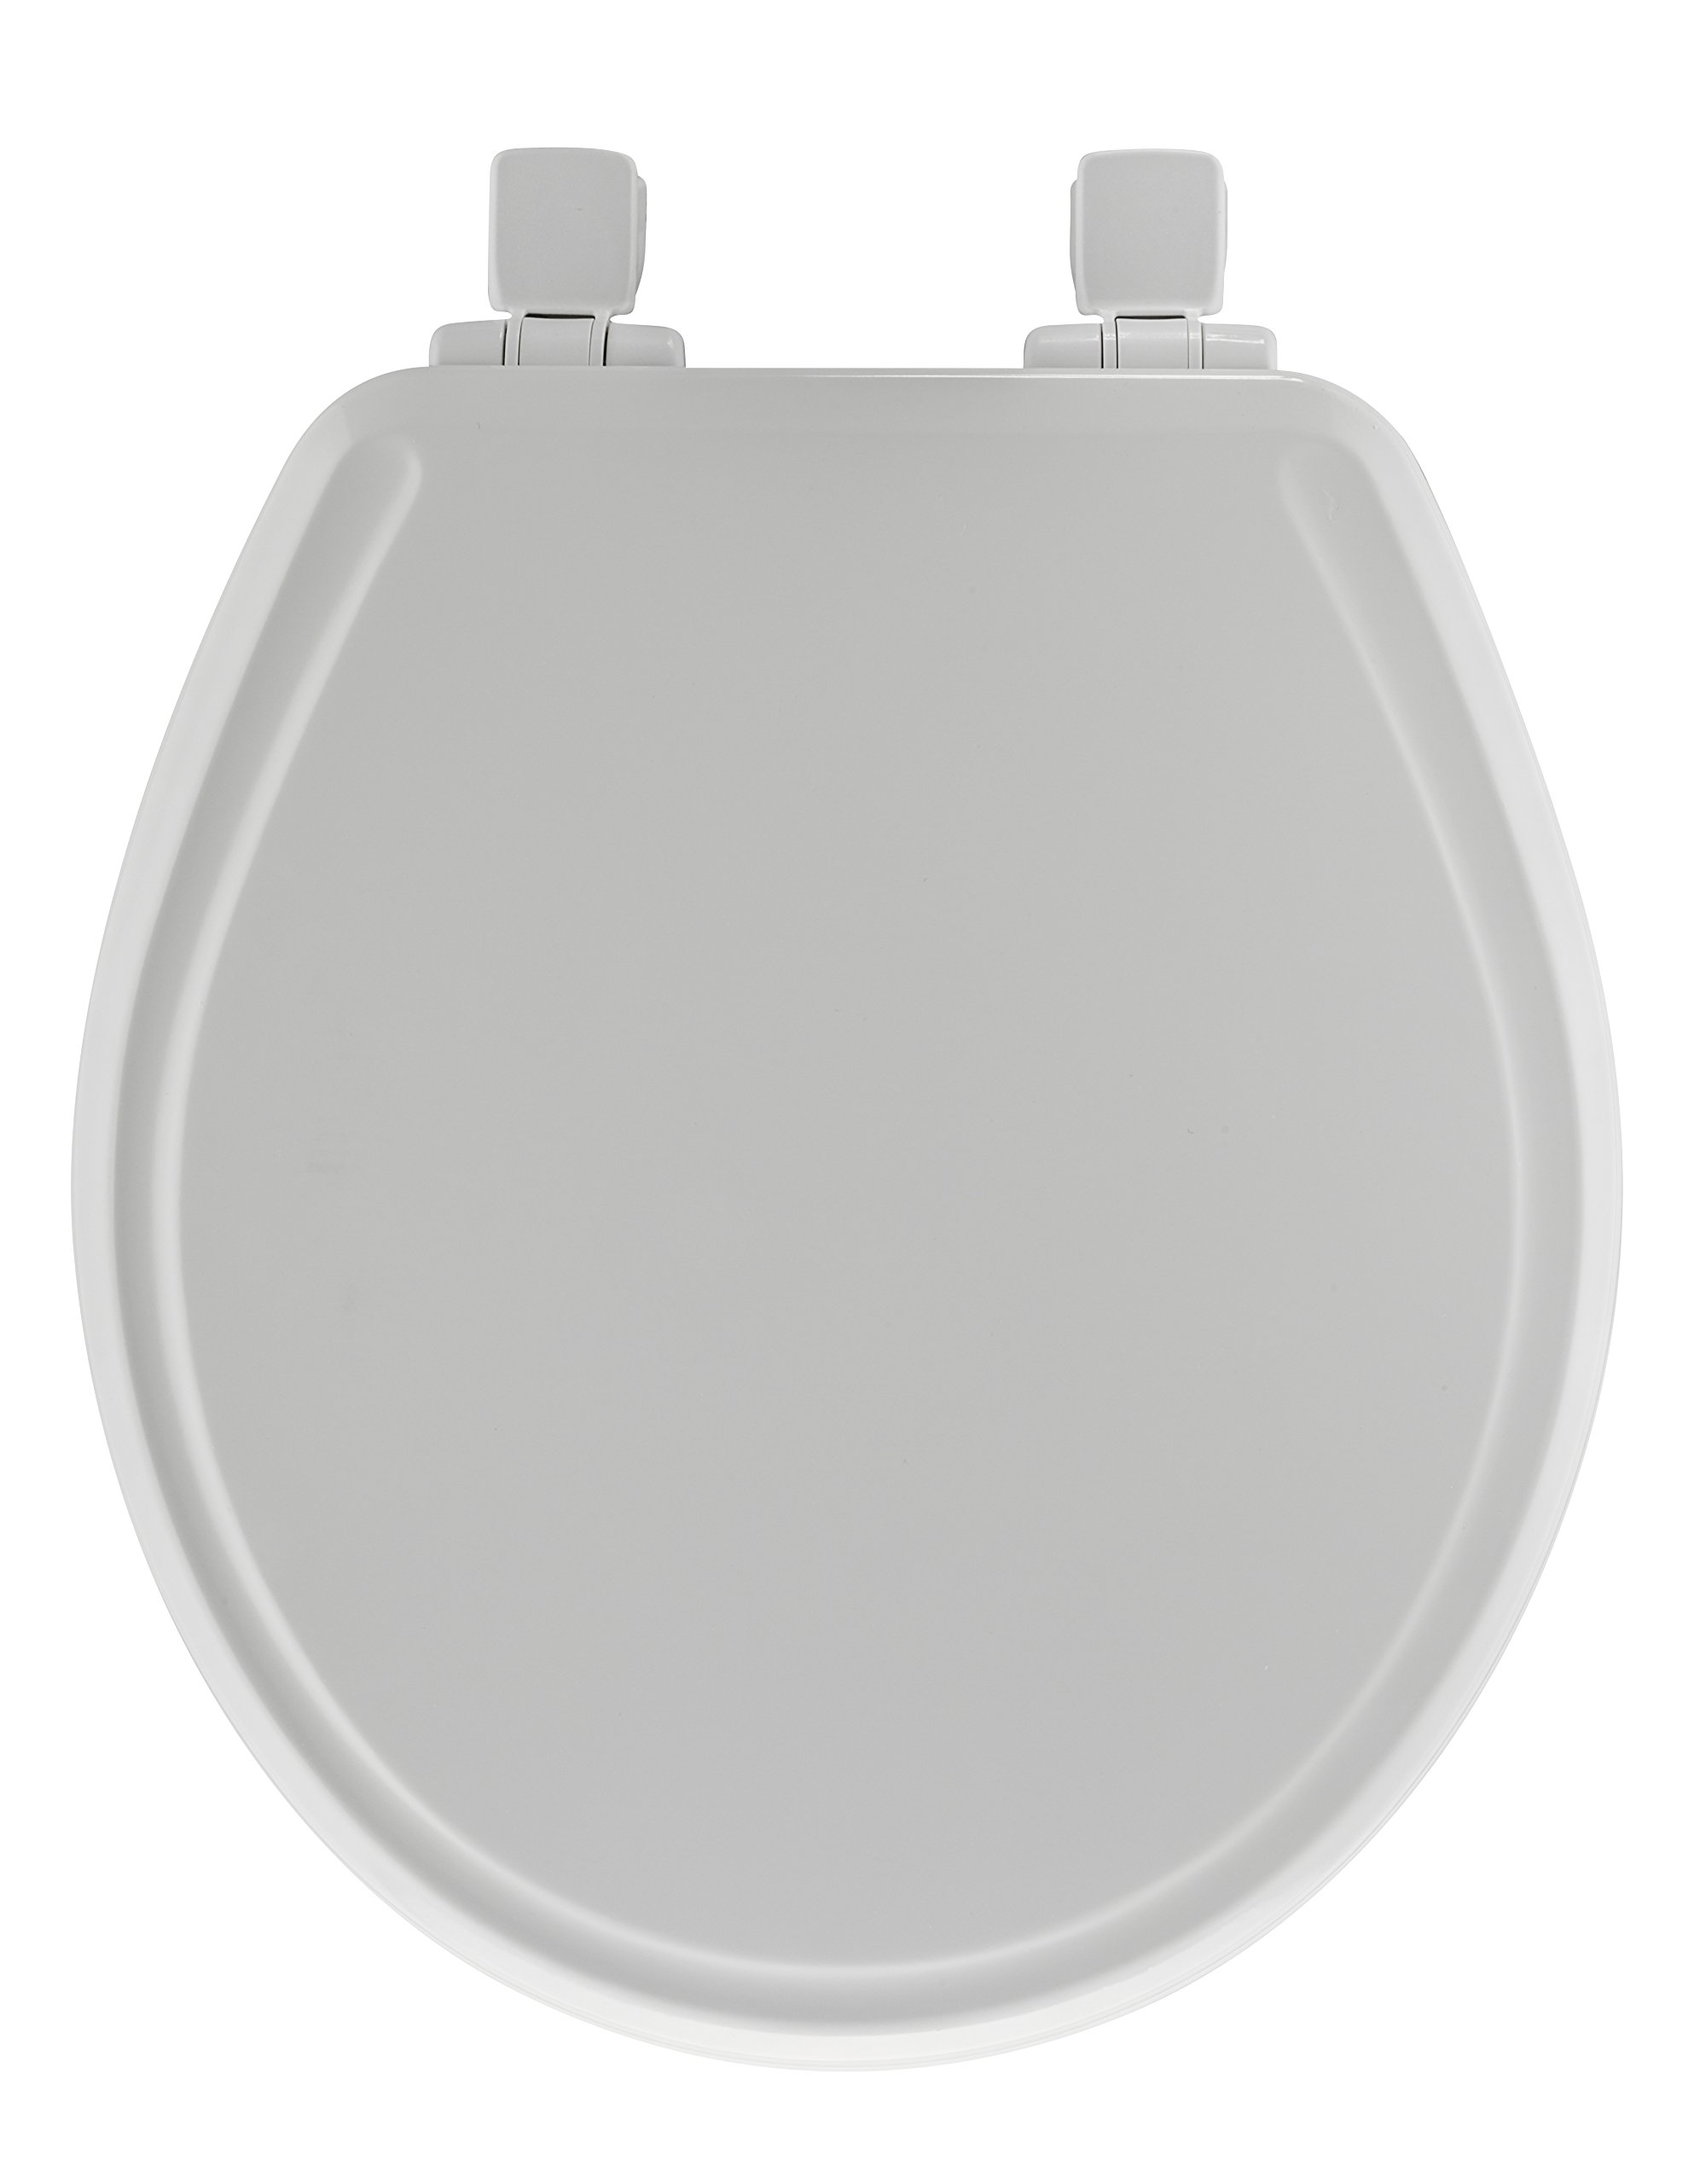 Mayfair 48SLOWA 000/848SLOWA 000 Molded Wood Toilet Seat featuring Whisper-Close, Easy Clean & Change Hinges and STA-TITE Seat Fastening System, Round, White by Mayfair (Image #2)